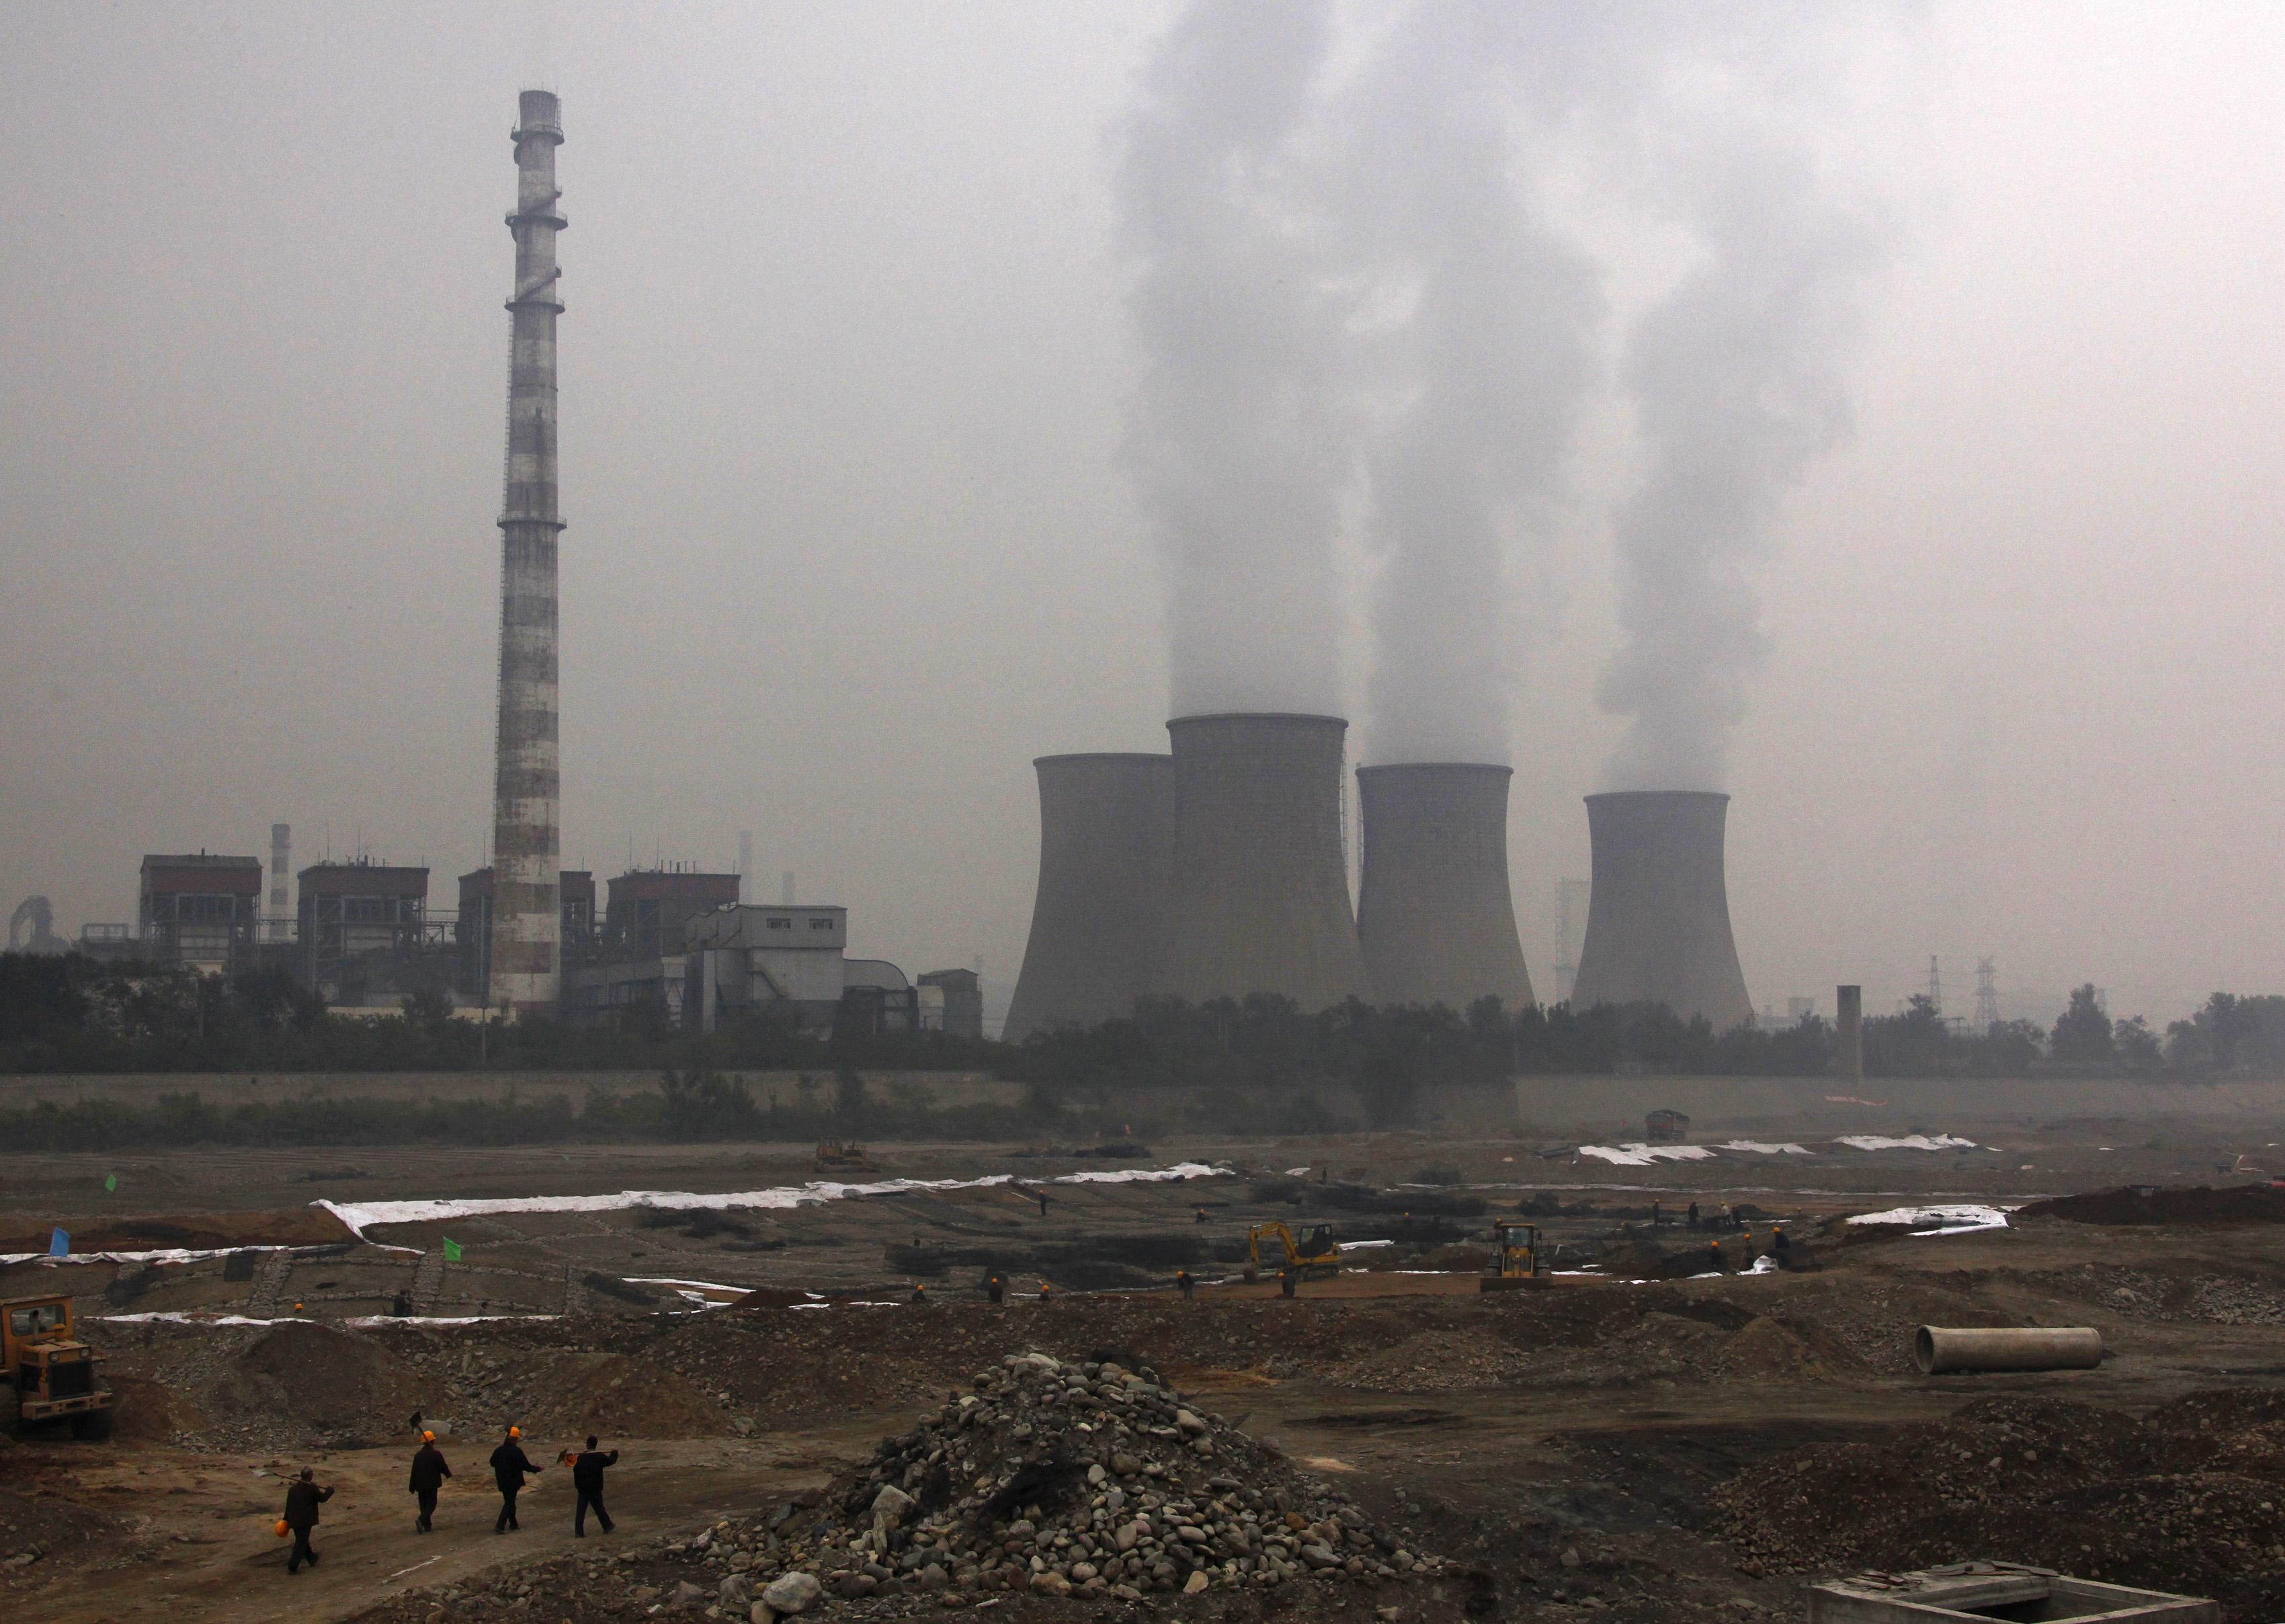 A coal-fired power plant in China. Reuters